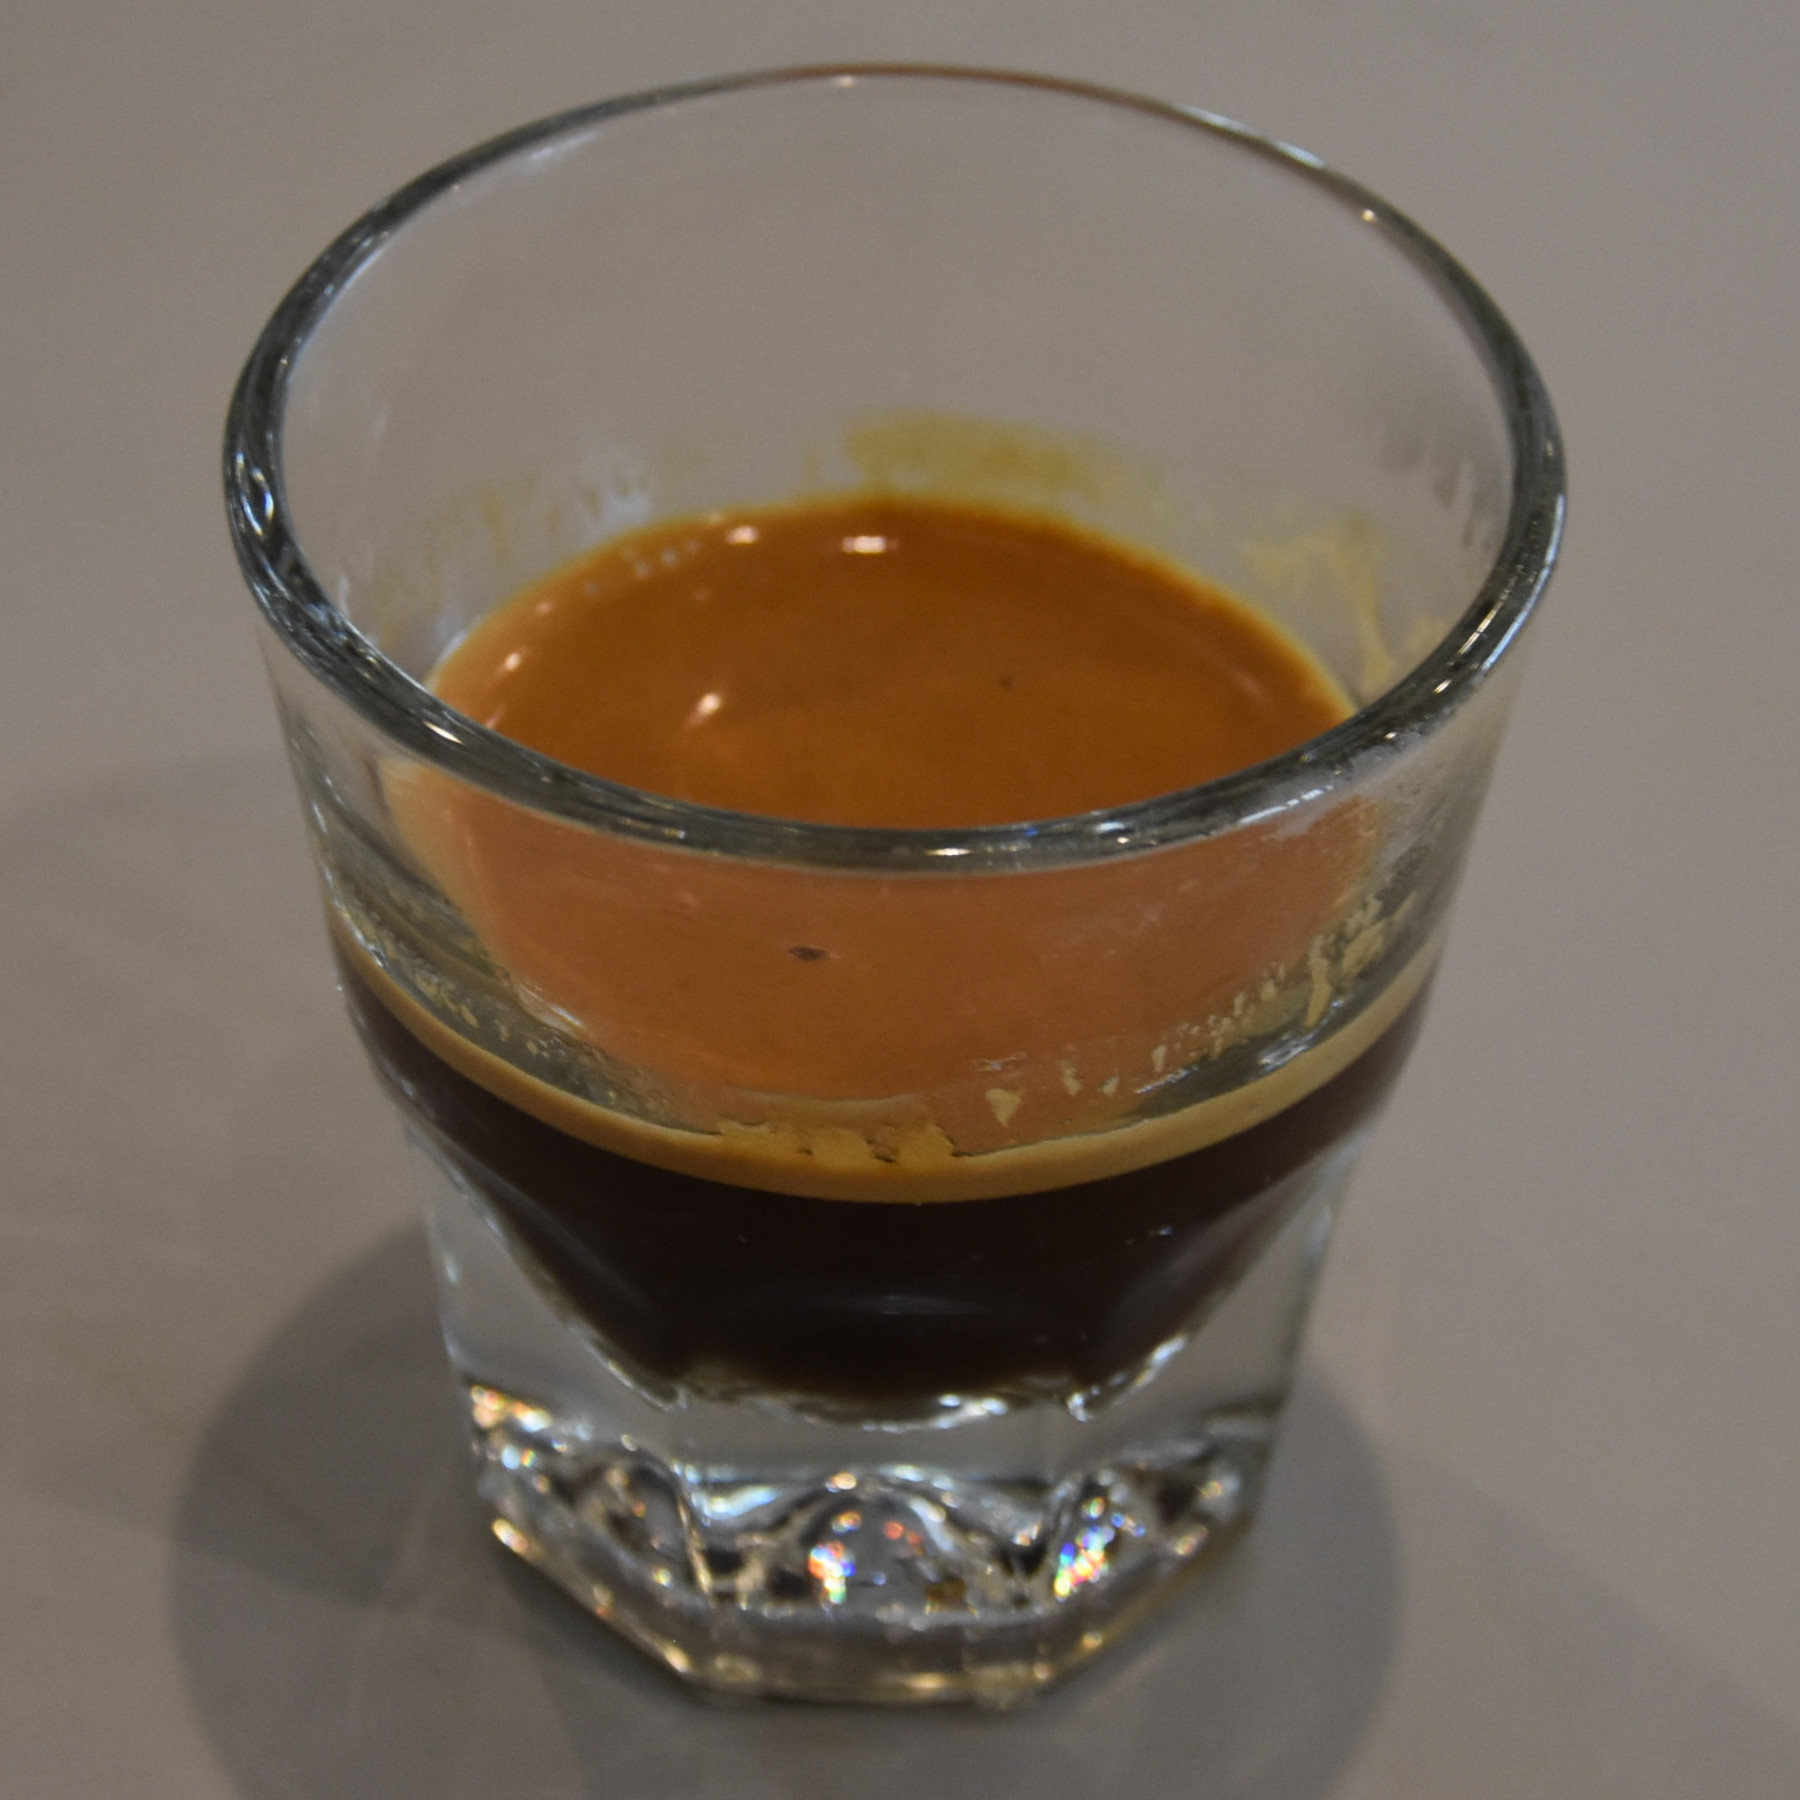 My espresso, an Ethiopian Guji from Horizon Line Coffee, served in a glass at Driftwood Coffee Co. in Peoria.